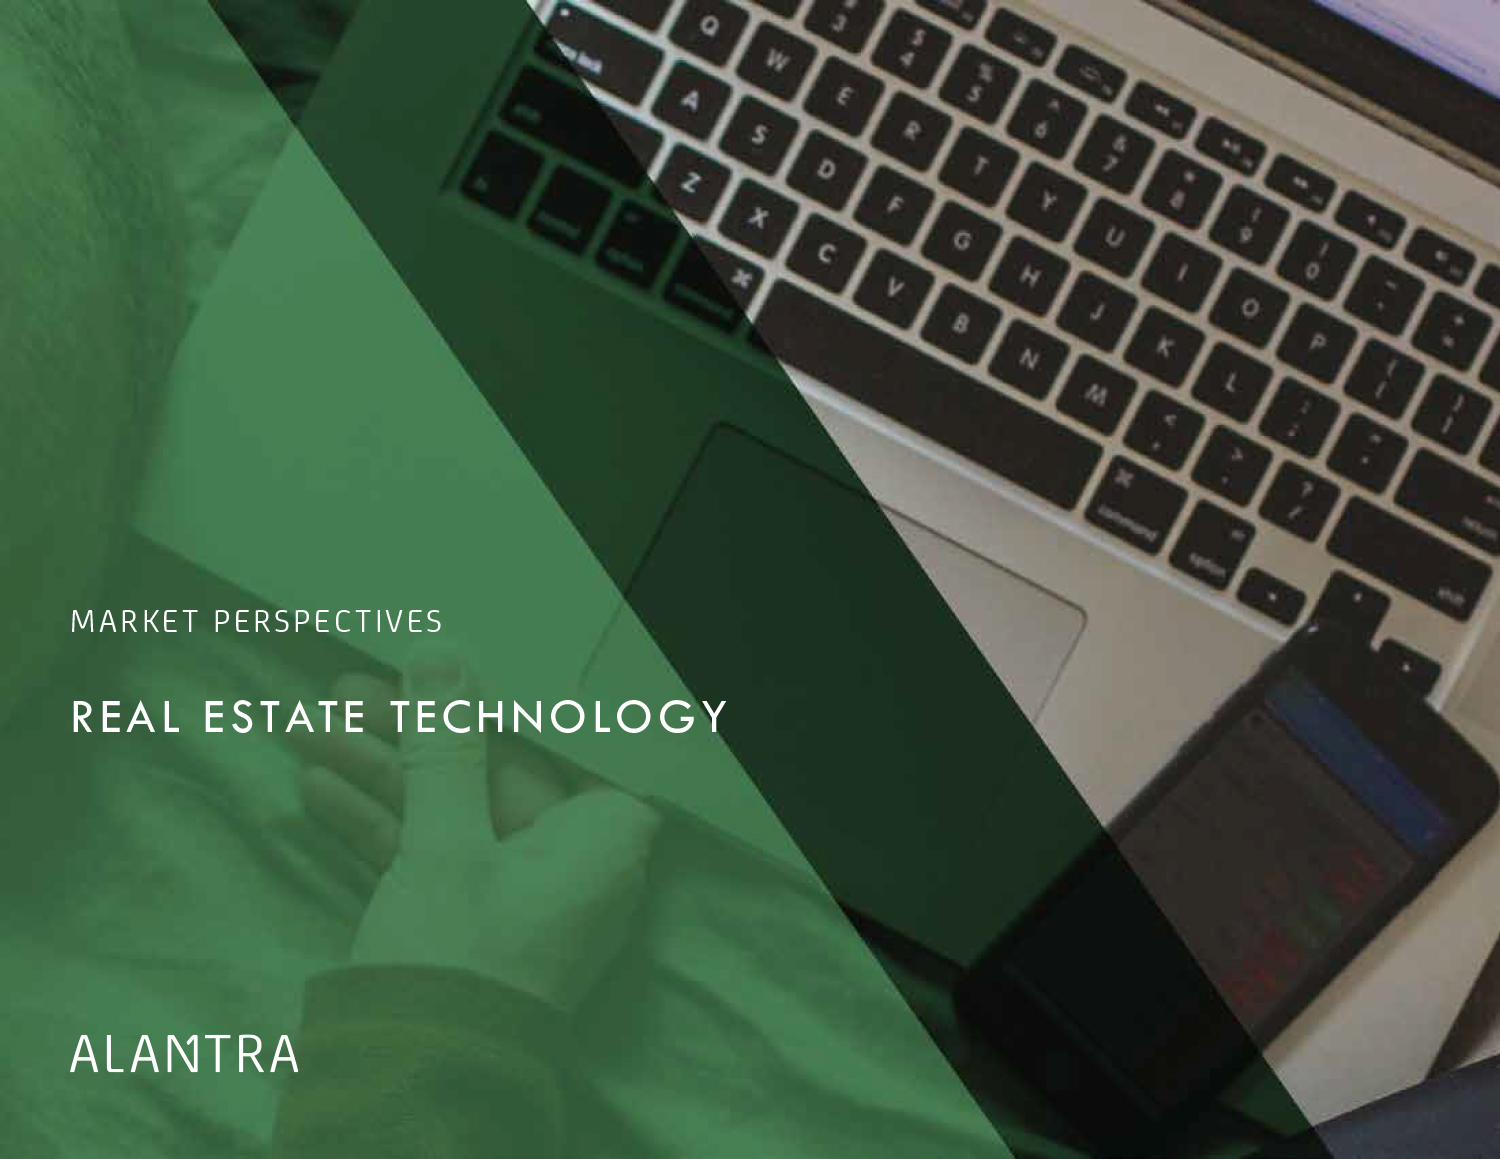 Real Estate Technology - Online marketplace and technology proliferation has empowered consumers and is changing broker dynamics with potential to eventually disinter mediate. Mortgage becoming 'top of the funnel' vs brokers for consumers with direct online access, creating substantial innovation in process automation. All aspects of mortgage experience and purchase path moving online. In the back office title and appraisal also beginning to go digital. The minutia of transaction needs to be more efficient and transparent.